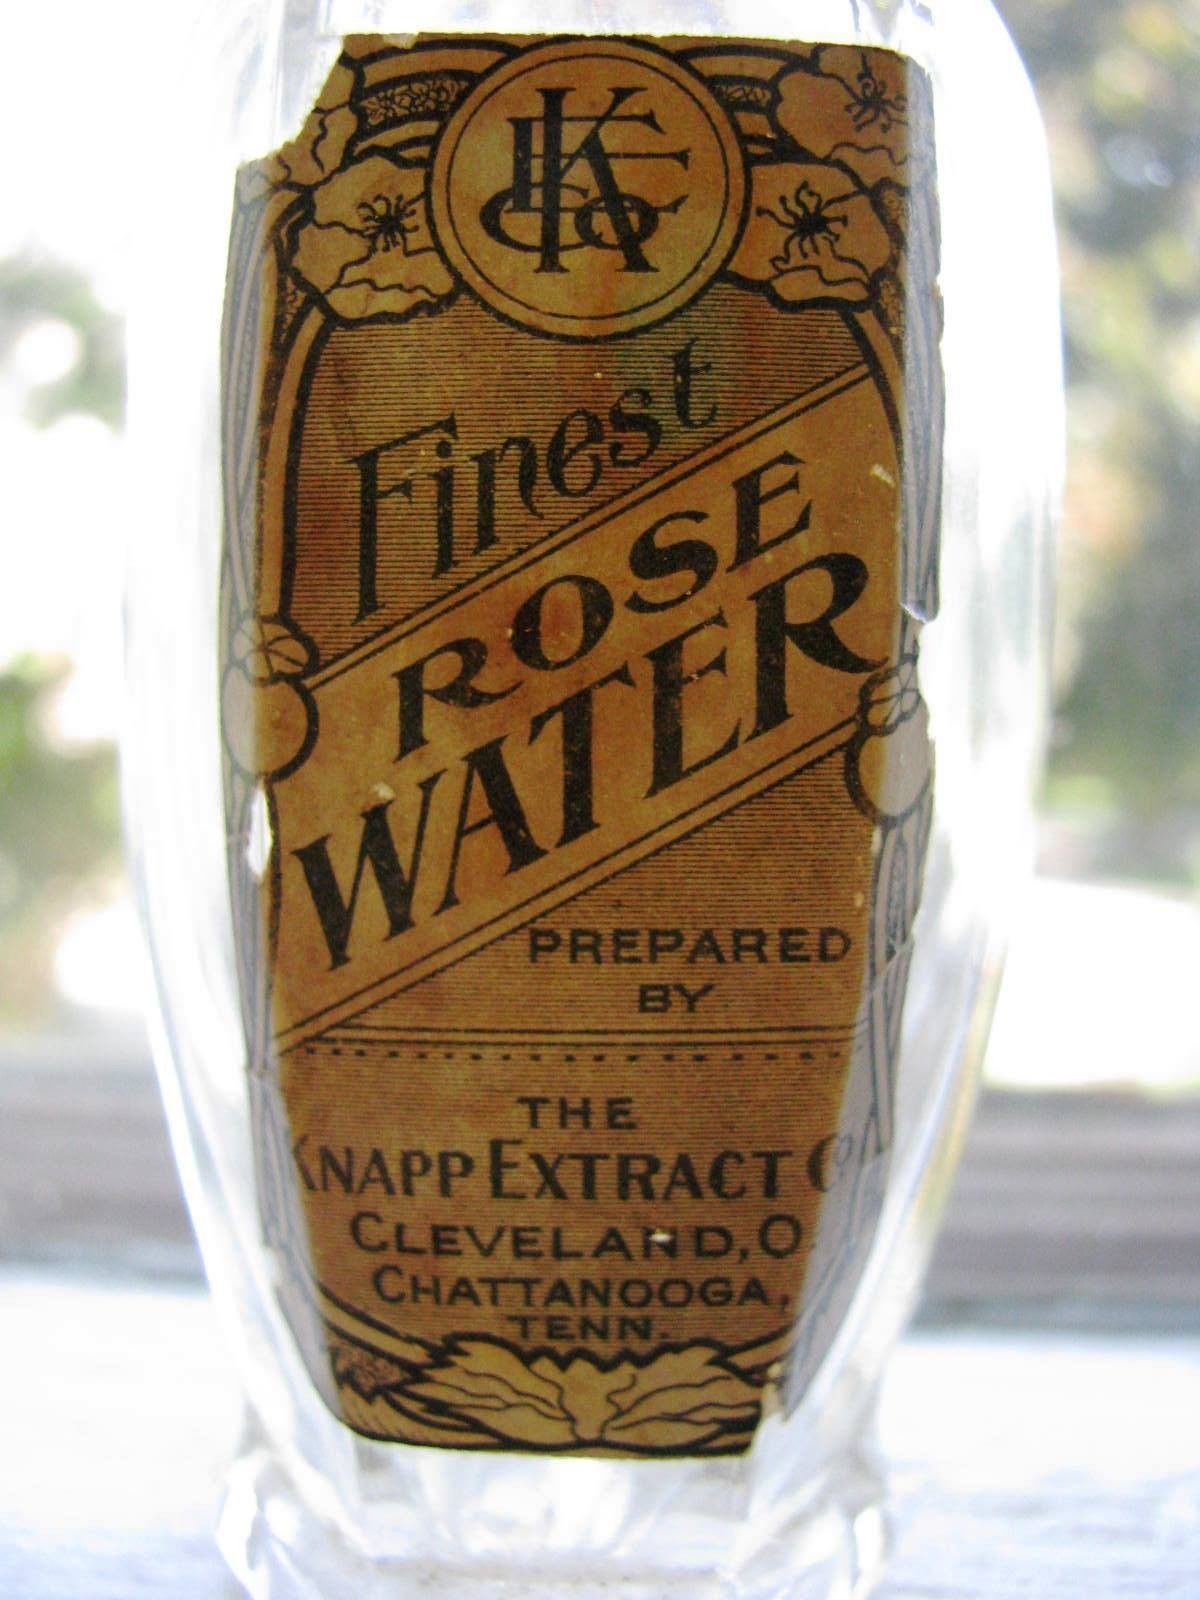 Finest ROSE WATER PREPARED BY THE KNAPP EXTRACT CO | CLEVELAND, OHION CHATTANOOGA TENN.